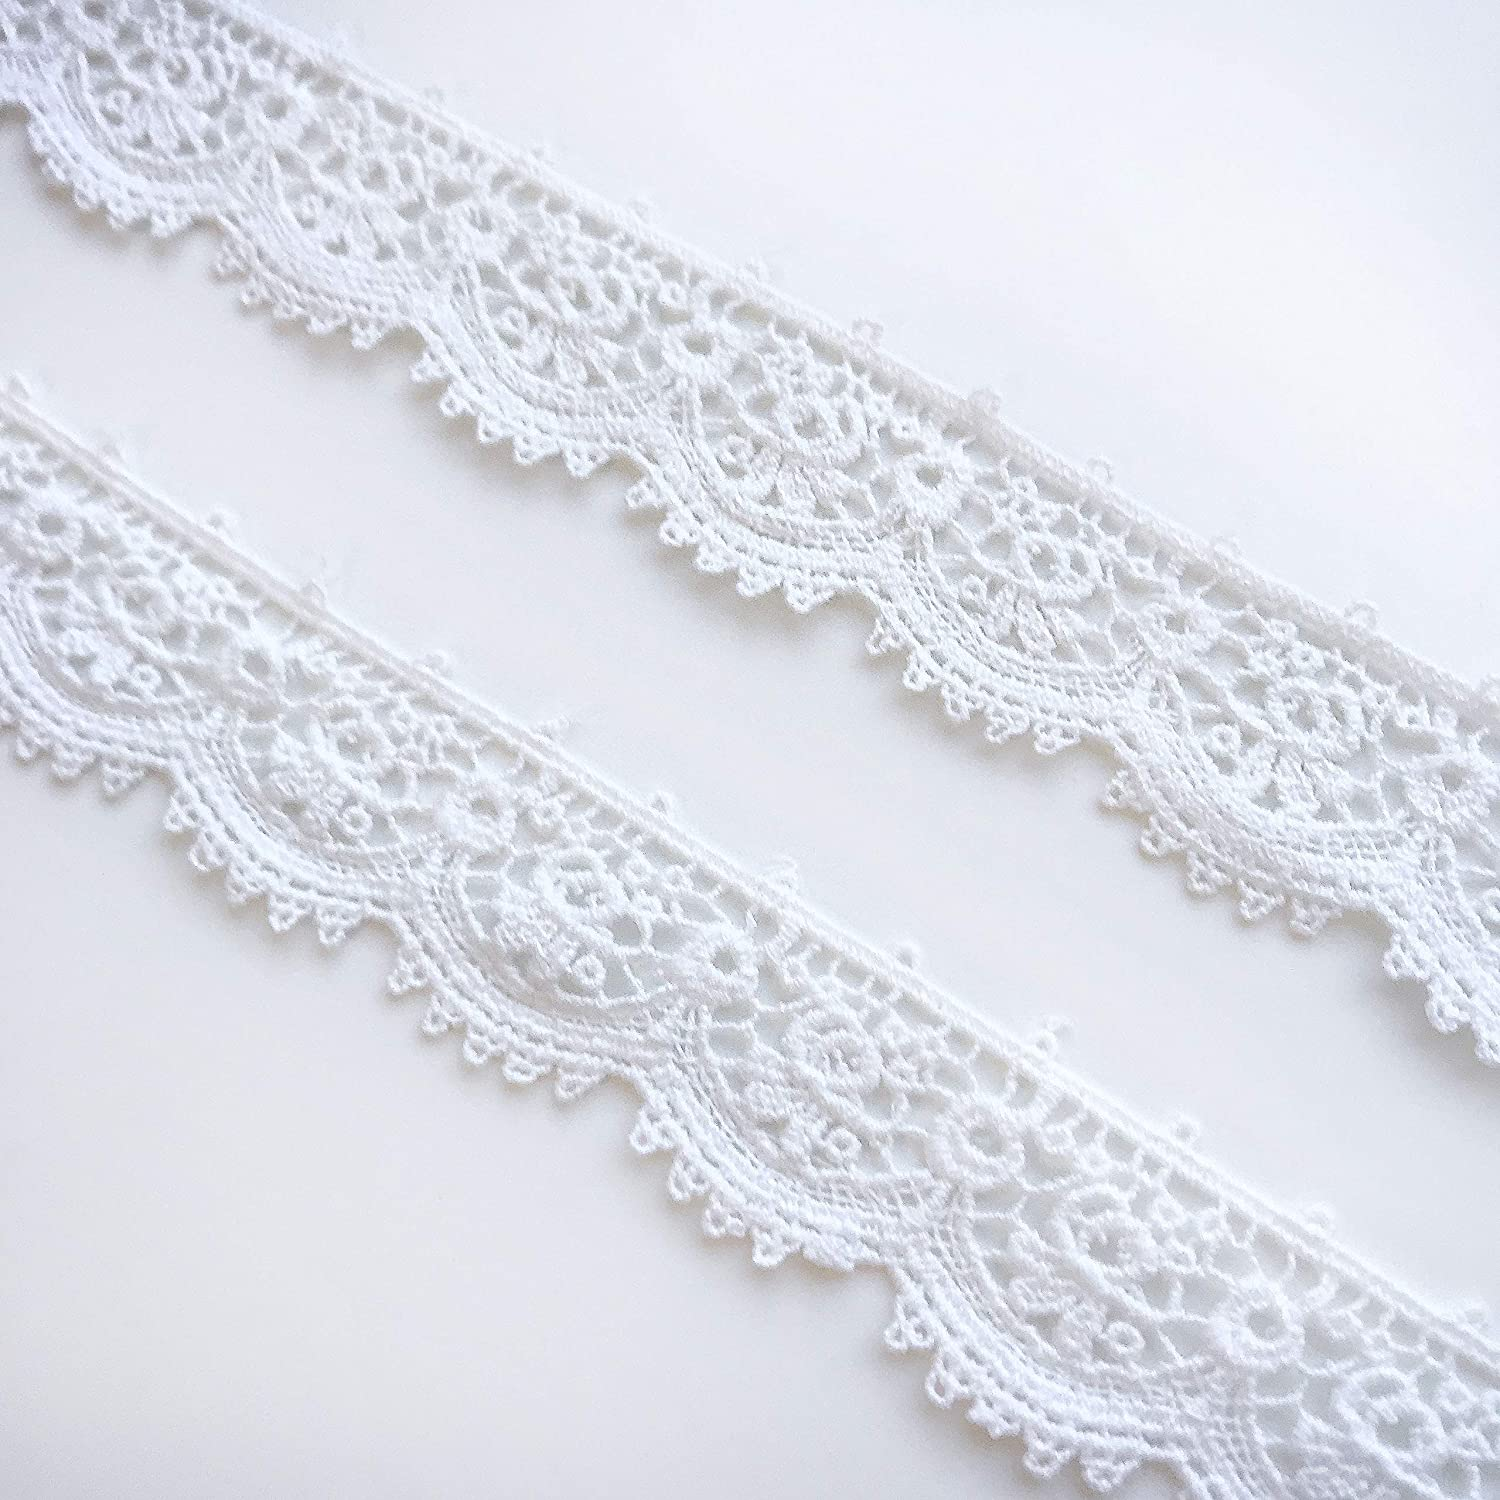 Off White Embroidered Cotton Lace Trim 15 cm Wide// 1 yard